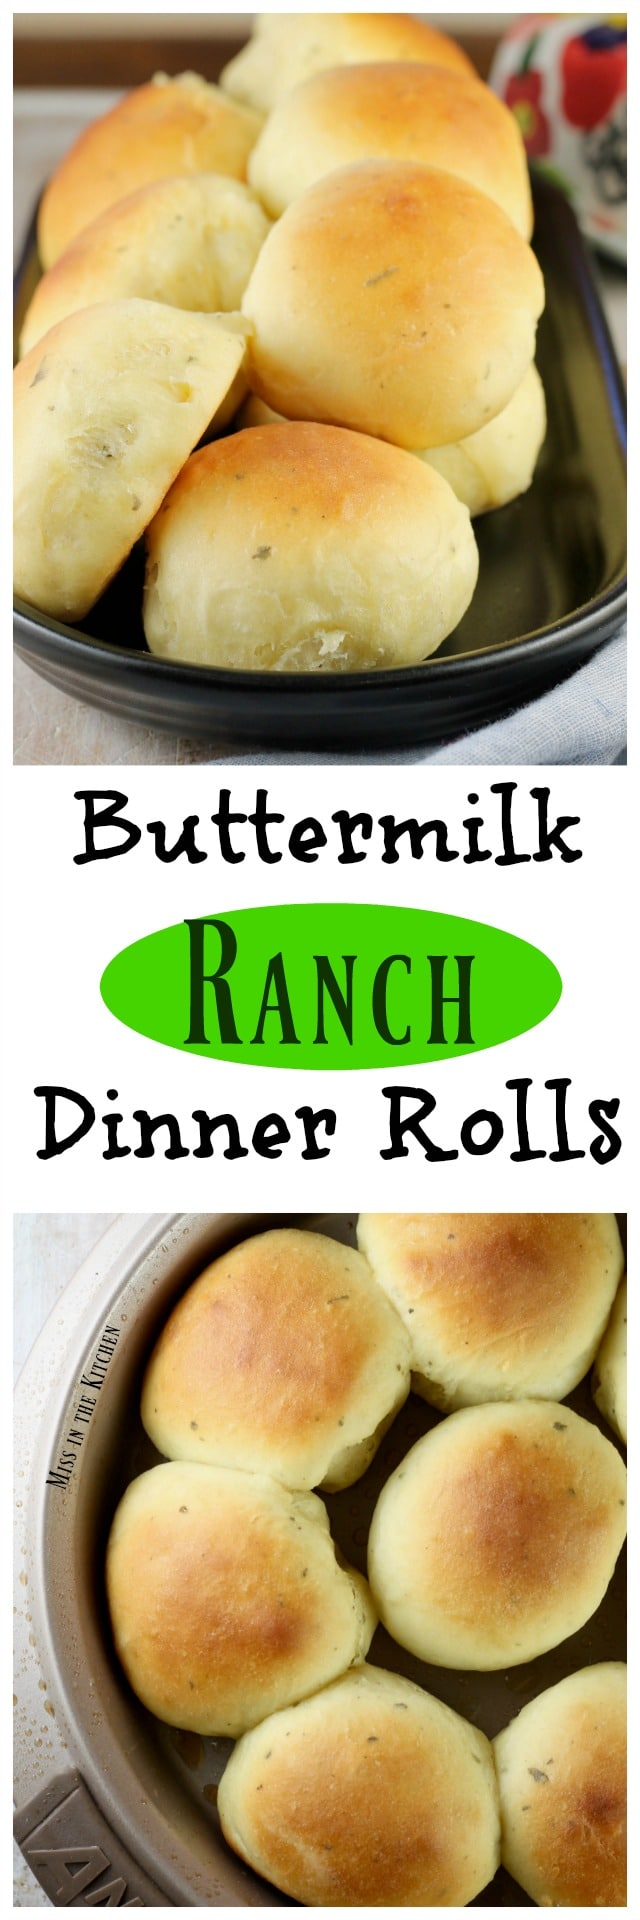 Buttermilk Ranch Dinner Rolls Recipe ~ amazing homemade dinner rolls for everyday and holiday dinners. Recipe from MissintheKitchen.com > Sponsored by Red Star Yeast